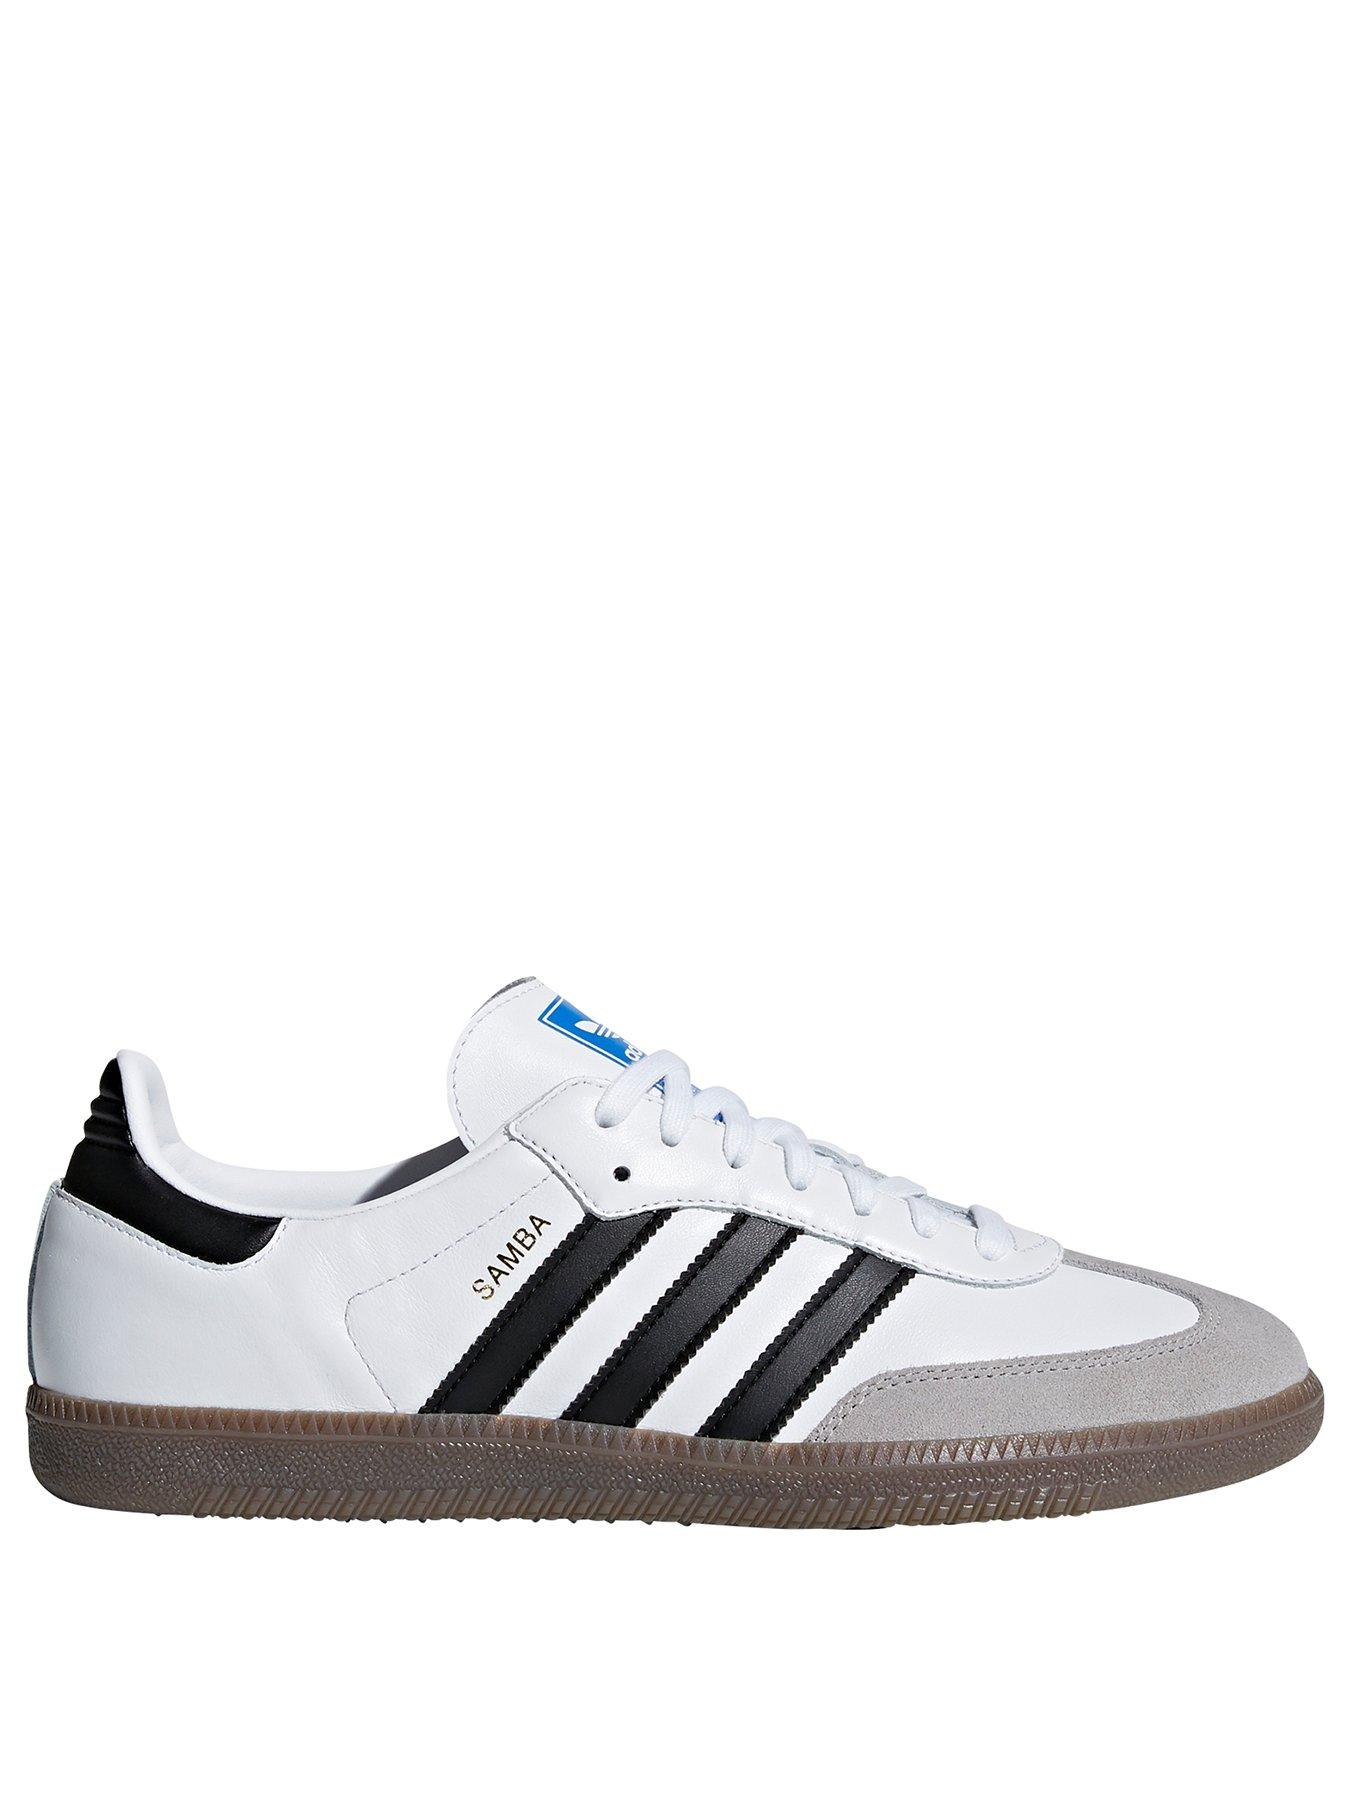 Mens Trainers   Shop Mens Trainers